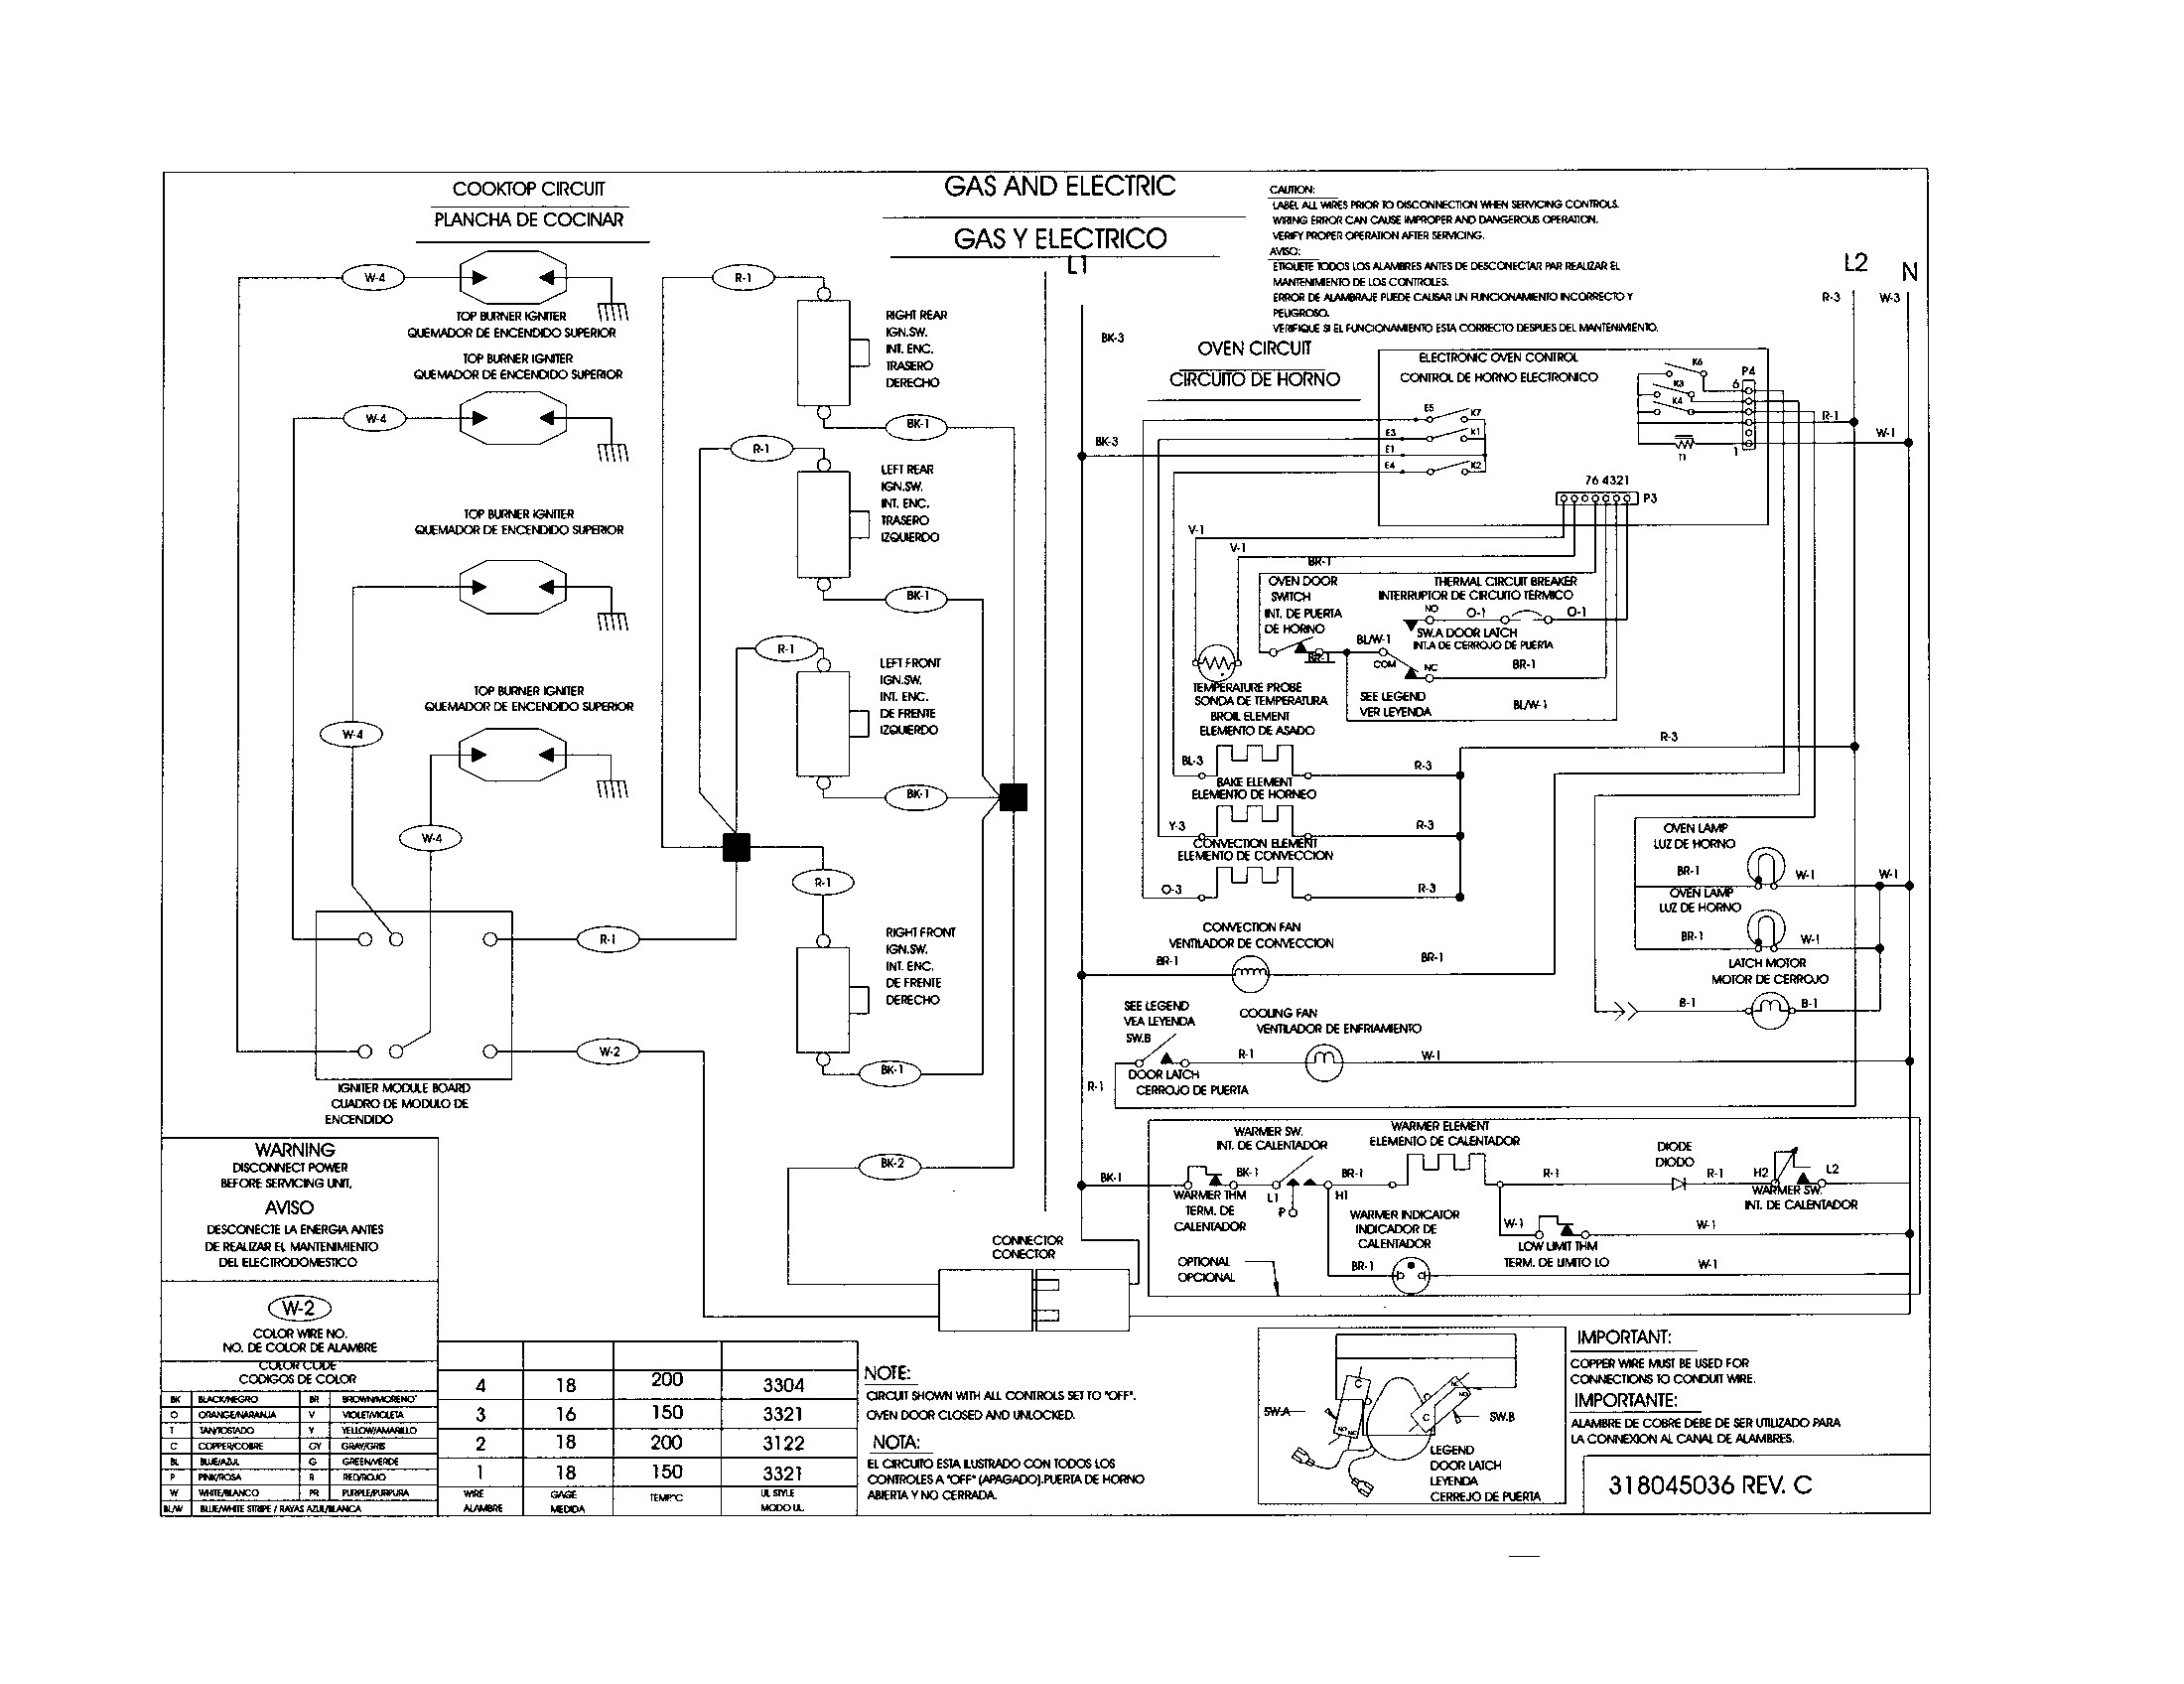 110 Dryer Wiring Diagram | Wiring Diagram on